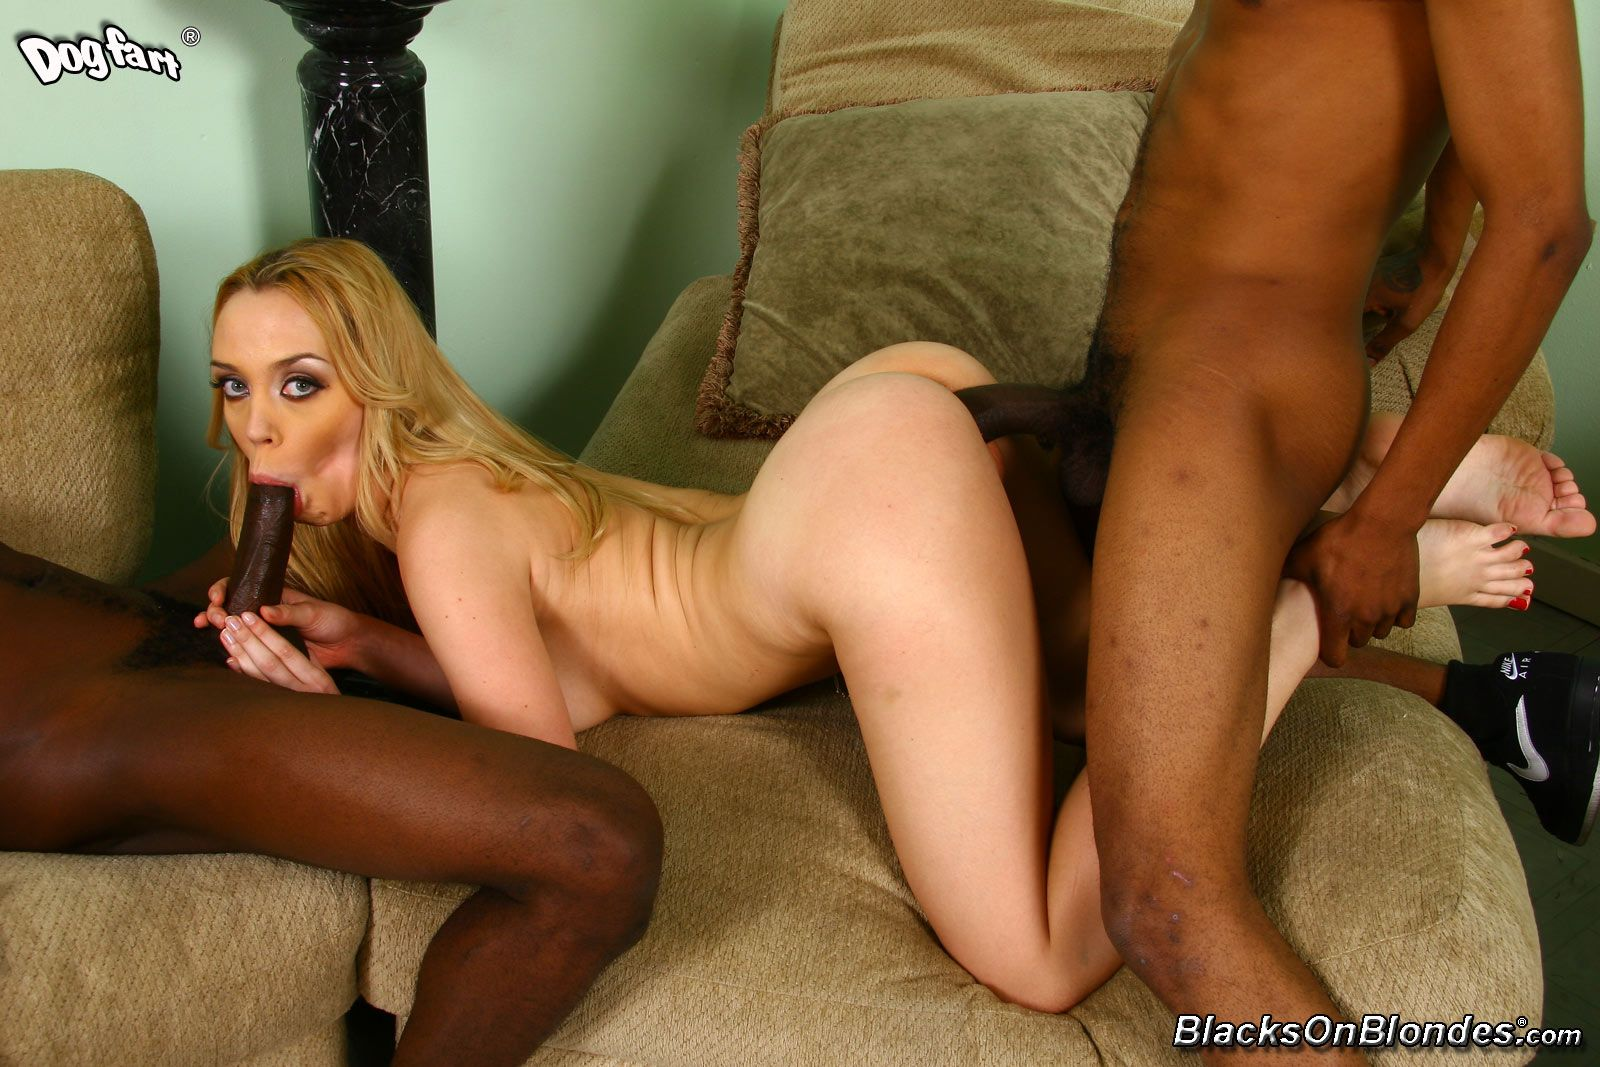 you incorrect interracial double smut suggest you